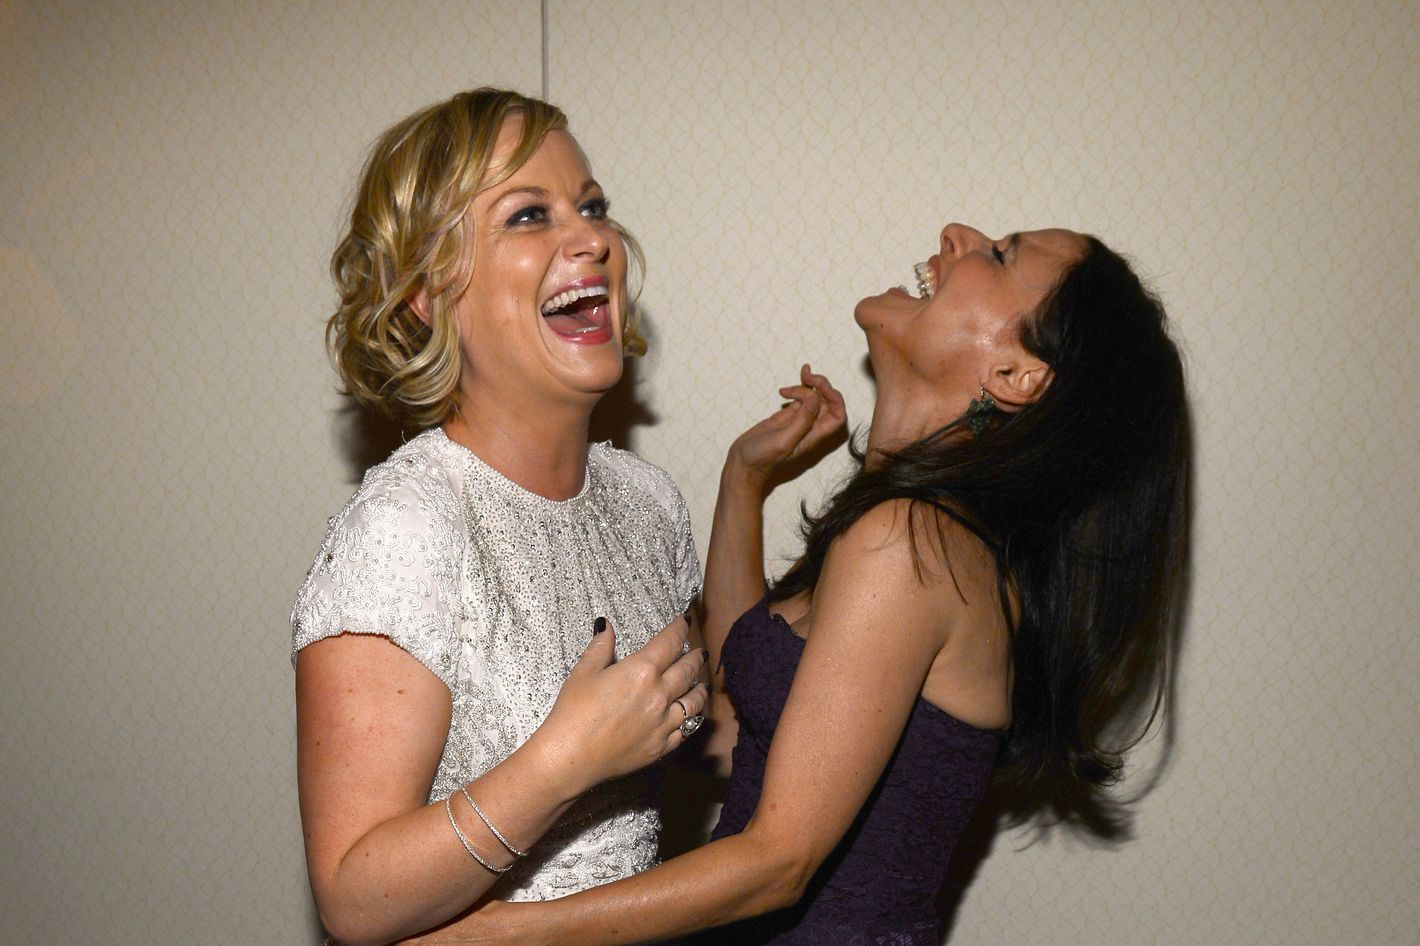 WASHINGTON, DC - APRIL 27:  Amy Poehler and Julia Louis-Dreyfus attend the TIME/CNN/PEOPLE/FORTUNE Pre-Dinner Cocktail Reception at Washington Hilton on April 27, 2013 in Washington, DC.  (Photo by Larry Busacca/Getty Images for Time, Inc)